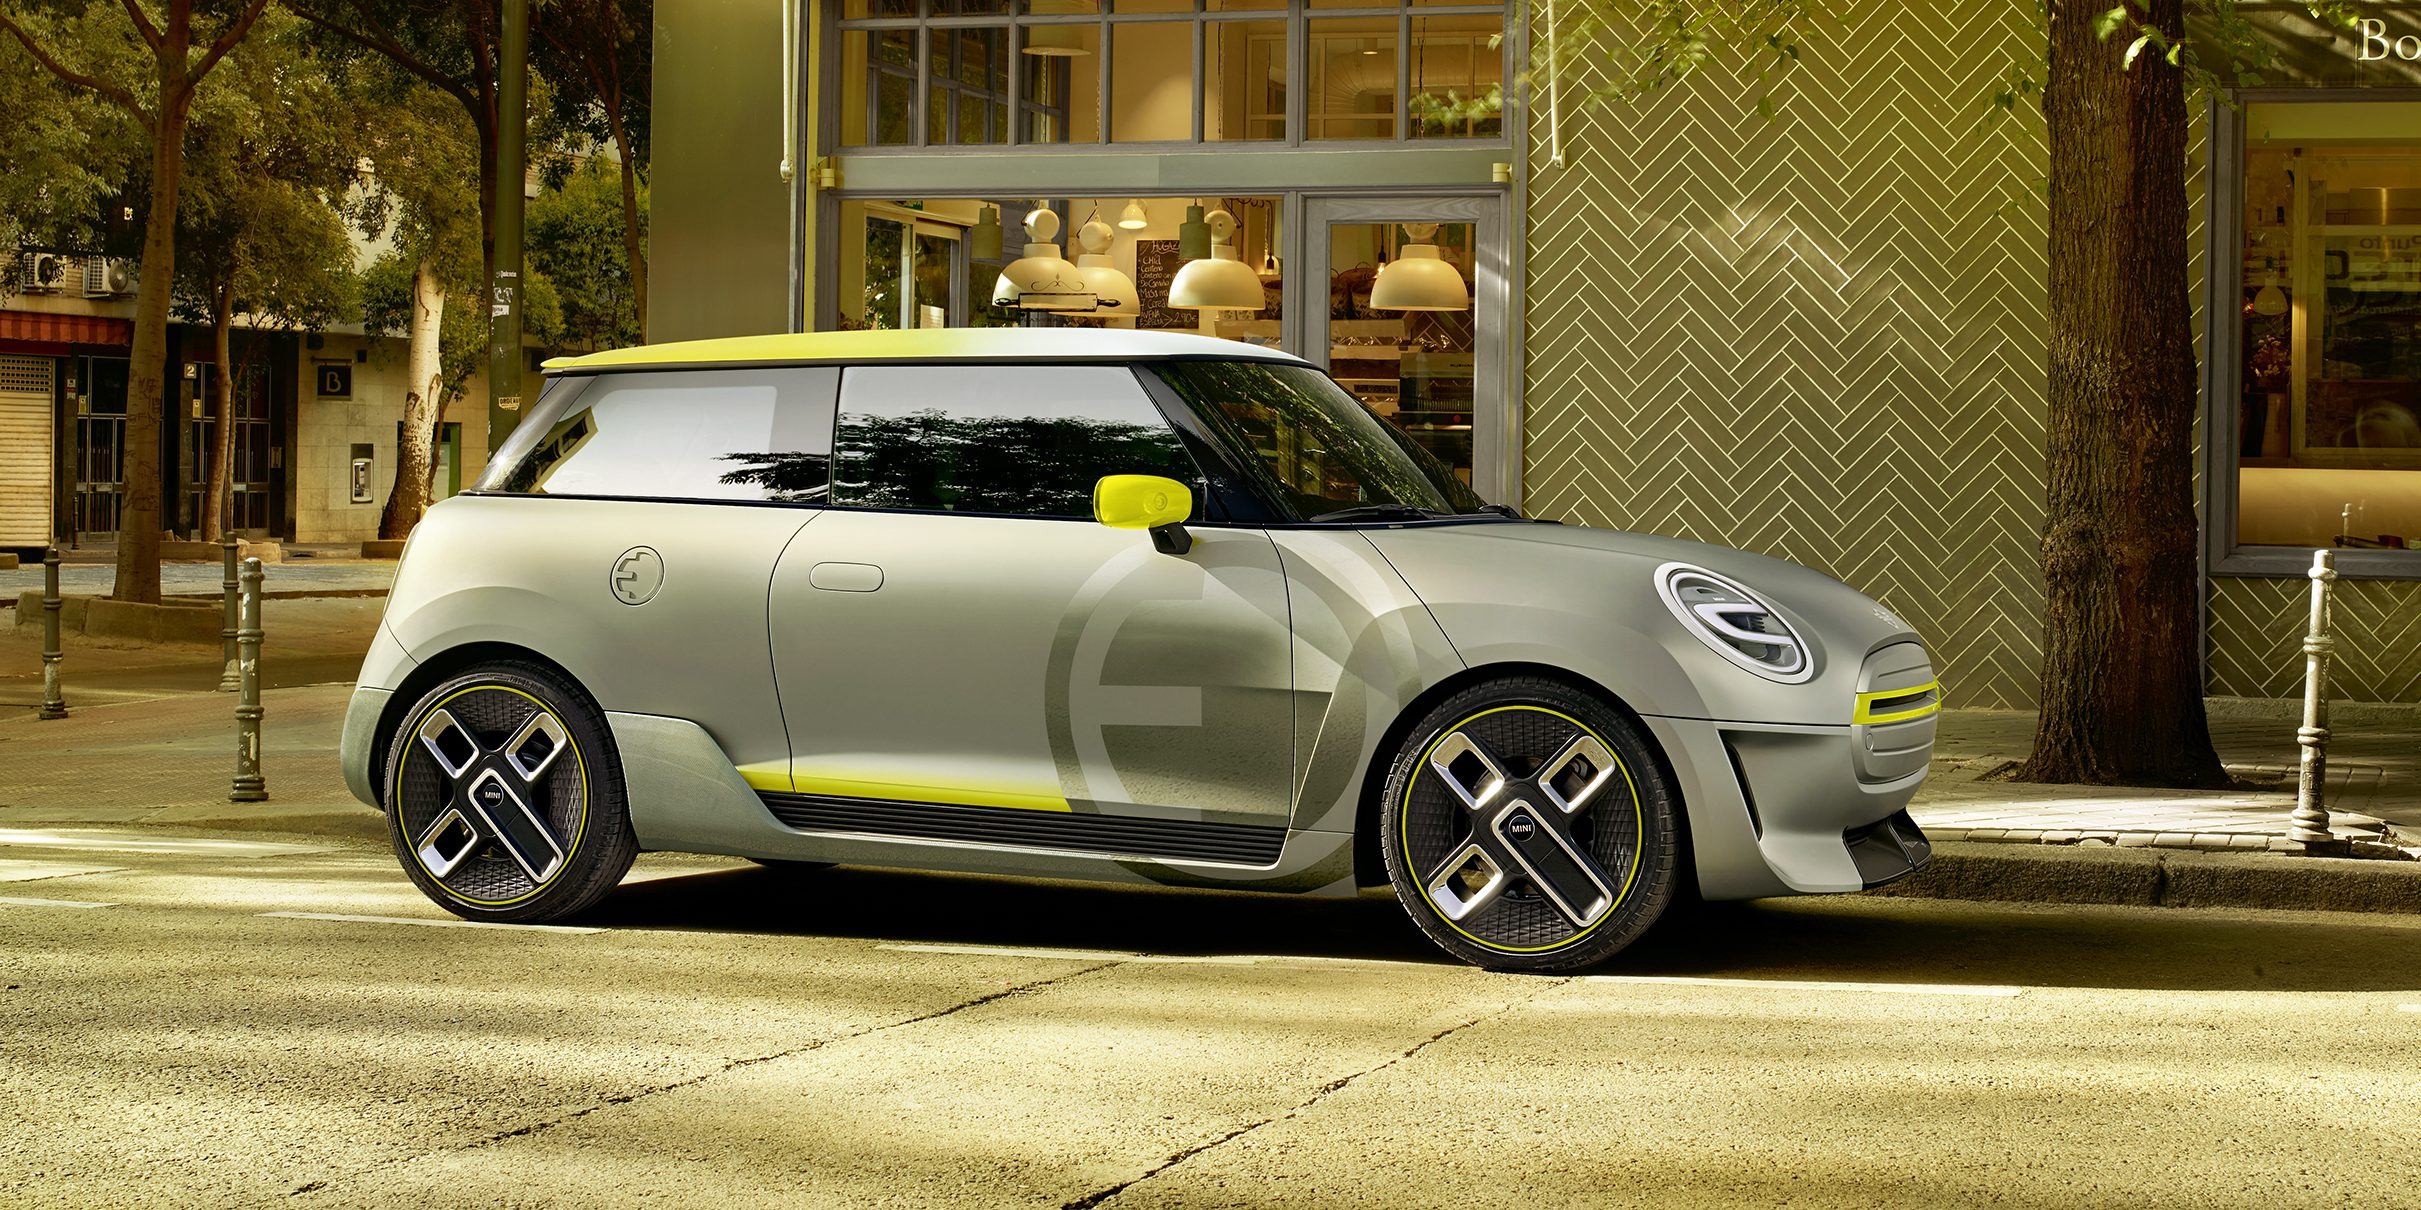 BMW unveils first production design features of the upcoming electric Mini